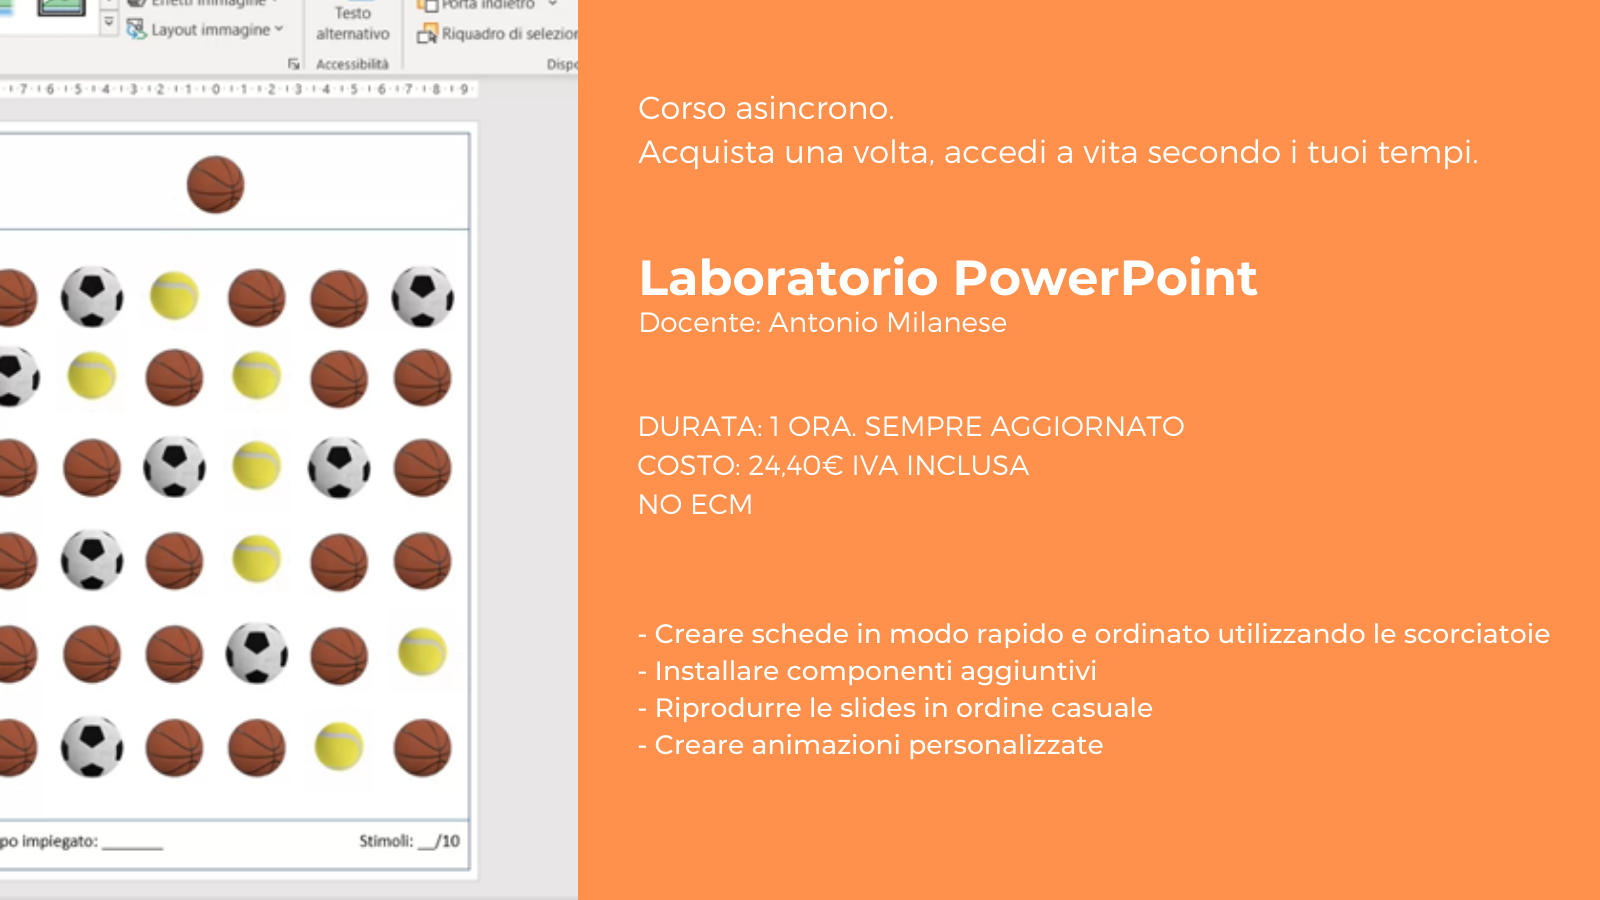 Laboratorio PowerPoint